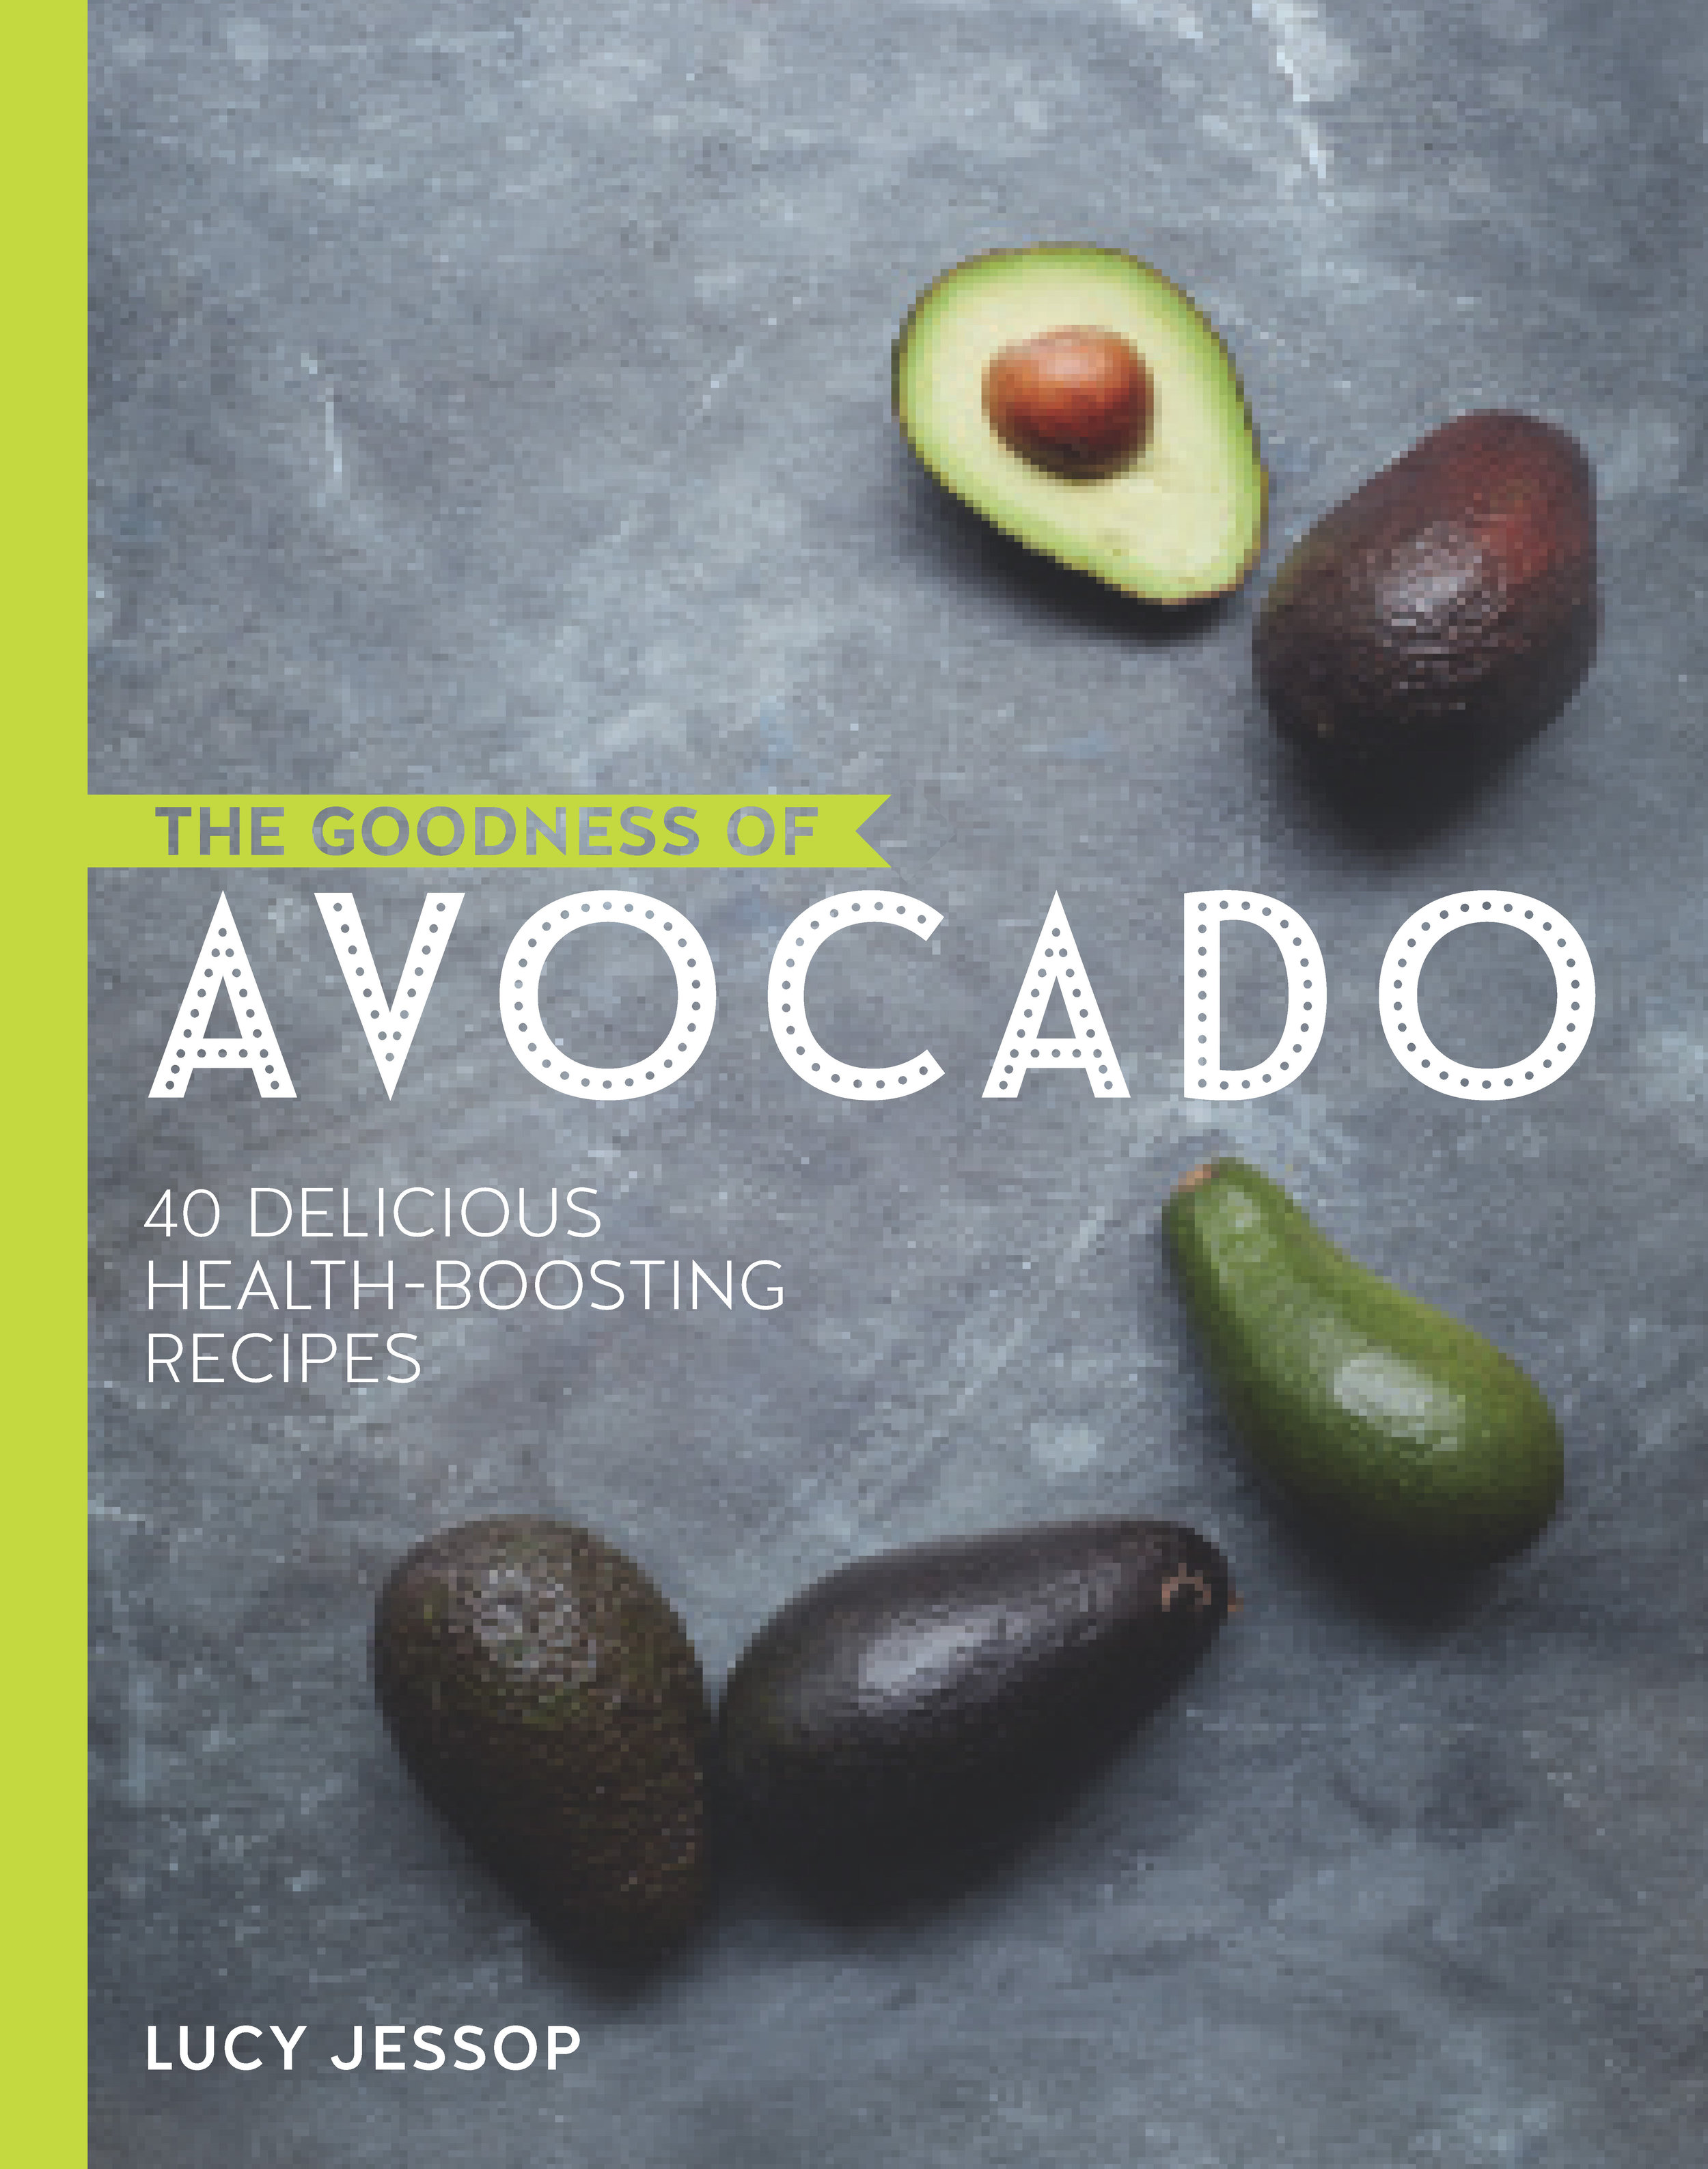 The Goodness of Avocado front cover.jpg